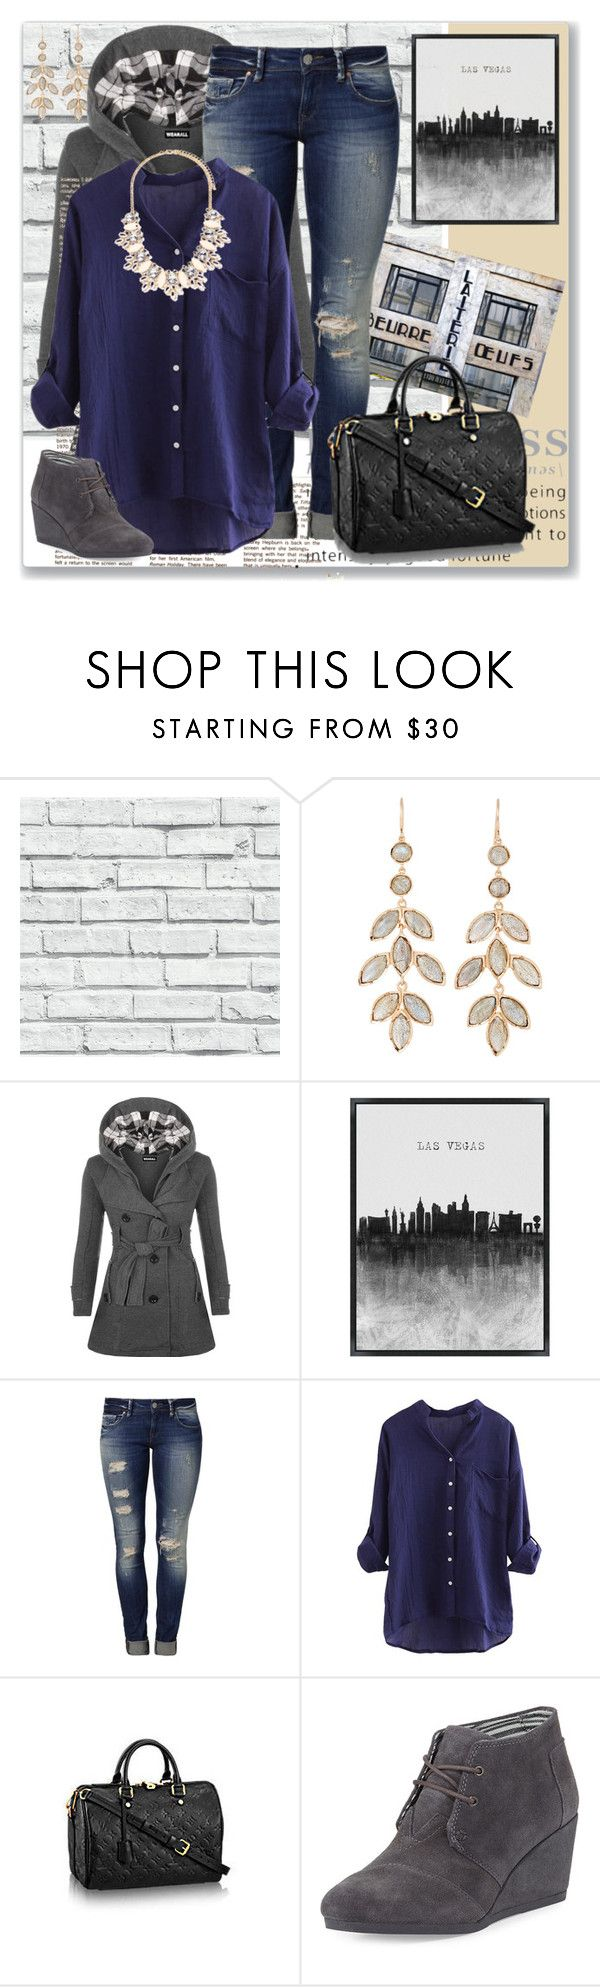 """Forever 21 Statement Necklace"" by xoxomaddiegirl ❤ liked on Polyvore featuring Irene Neuwirth, WearAll, Mavi, Empreinte, TOMS and Forever 21"